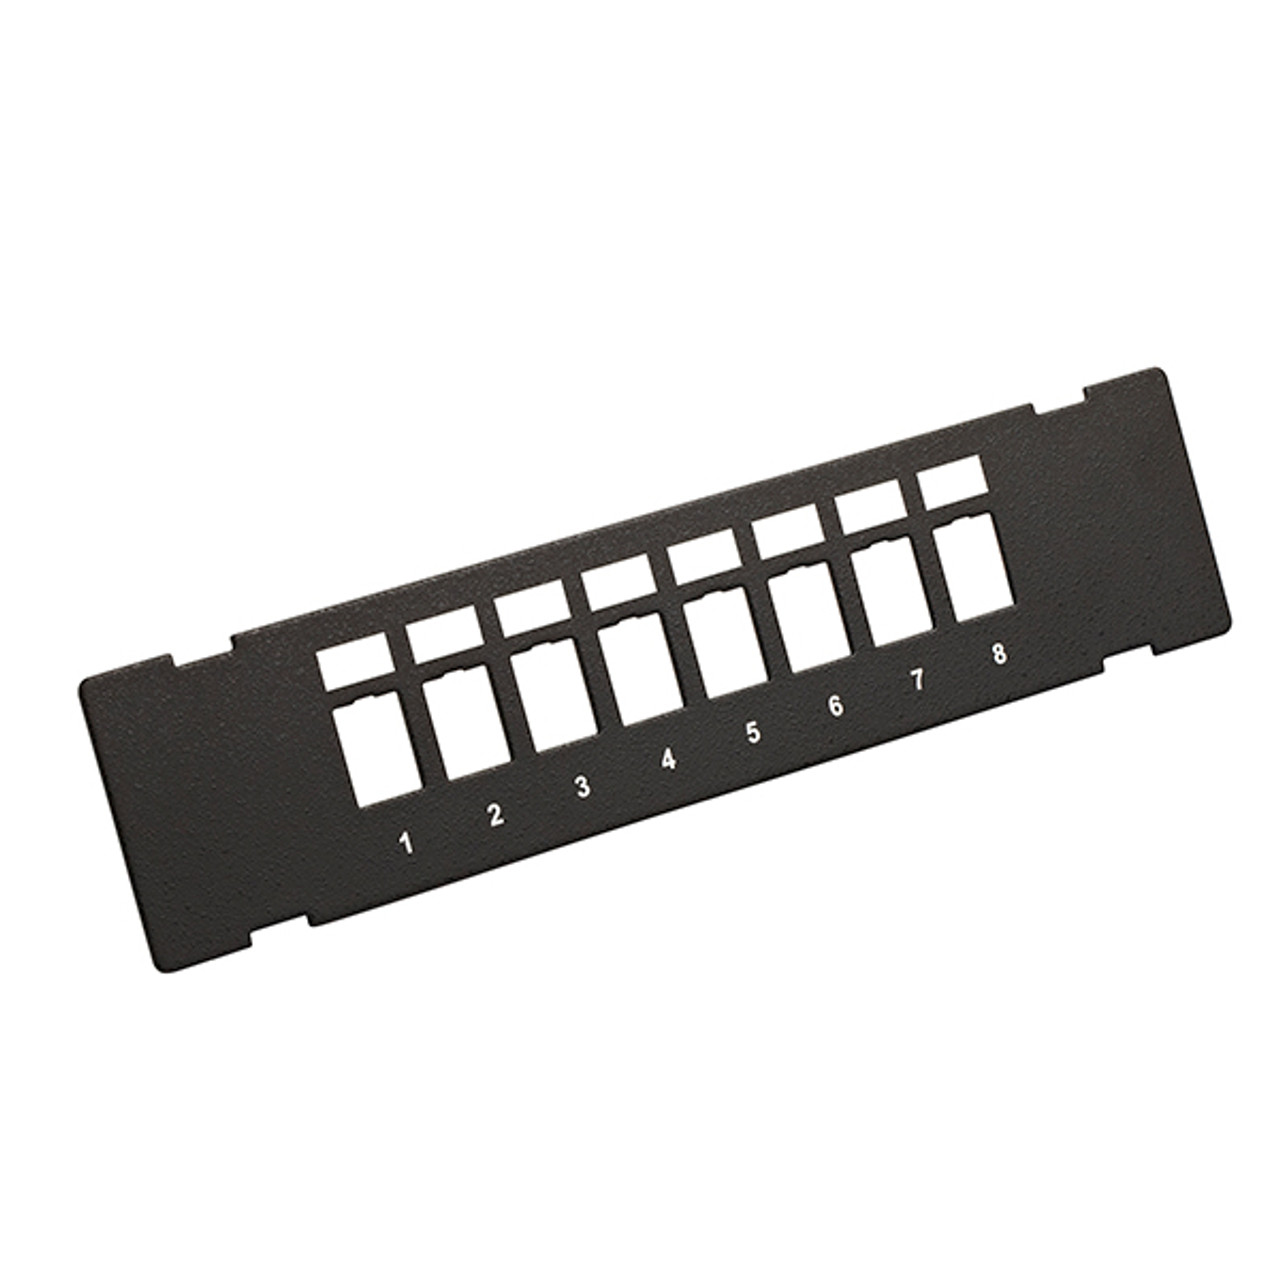 Image for 4Cabling 8 Port Unloaded Wall Mount Patch Panel CX Computer Superstore